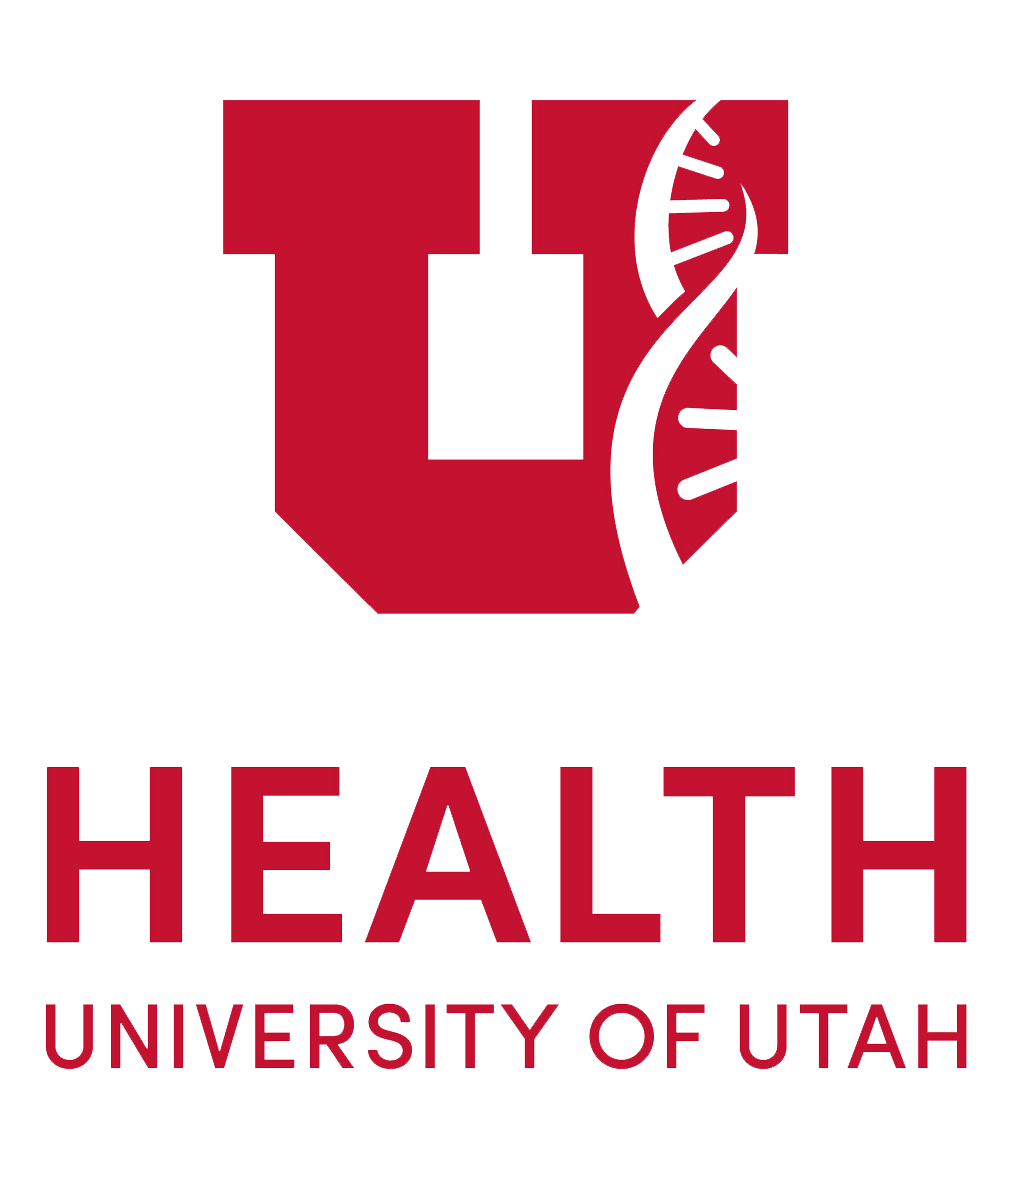 University of Utah MS in Recreational Therapy